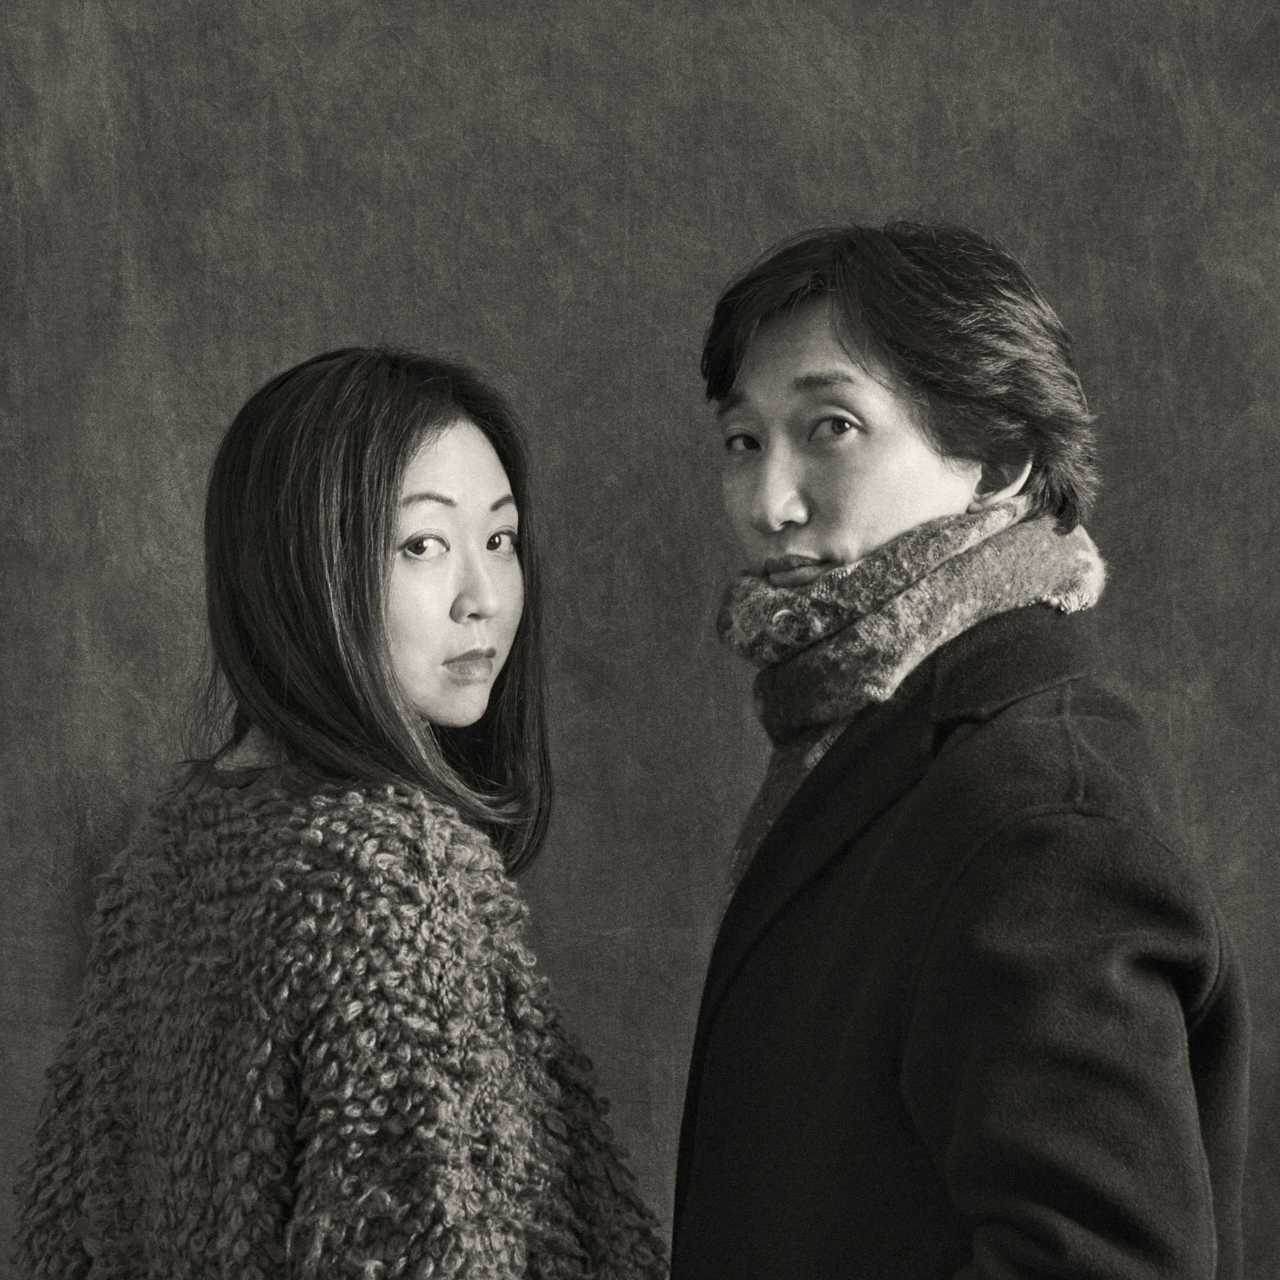 Bang and Lee, a Seoul-based artistic duo (Courtesy of the artist)